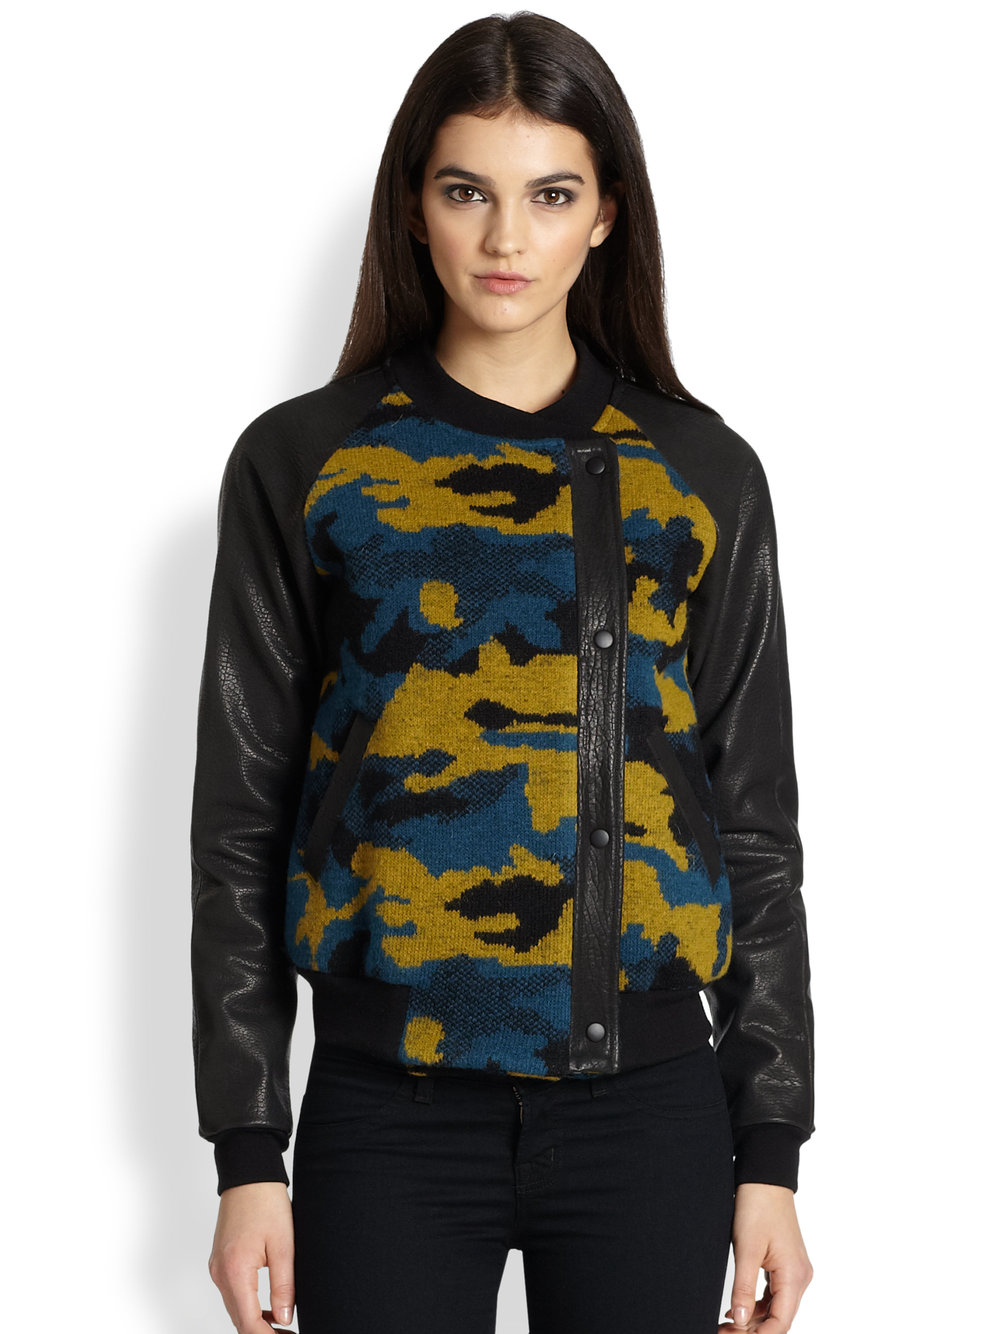 gryphon-greenblue-camo-camo-leather-combo-moto-jacket-product-1-12343684-026921644.jpeg